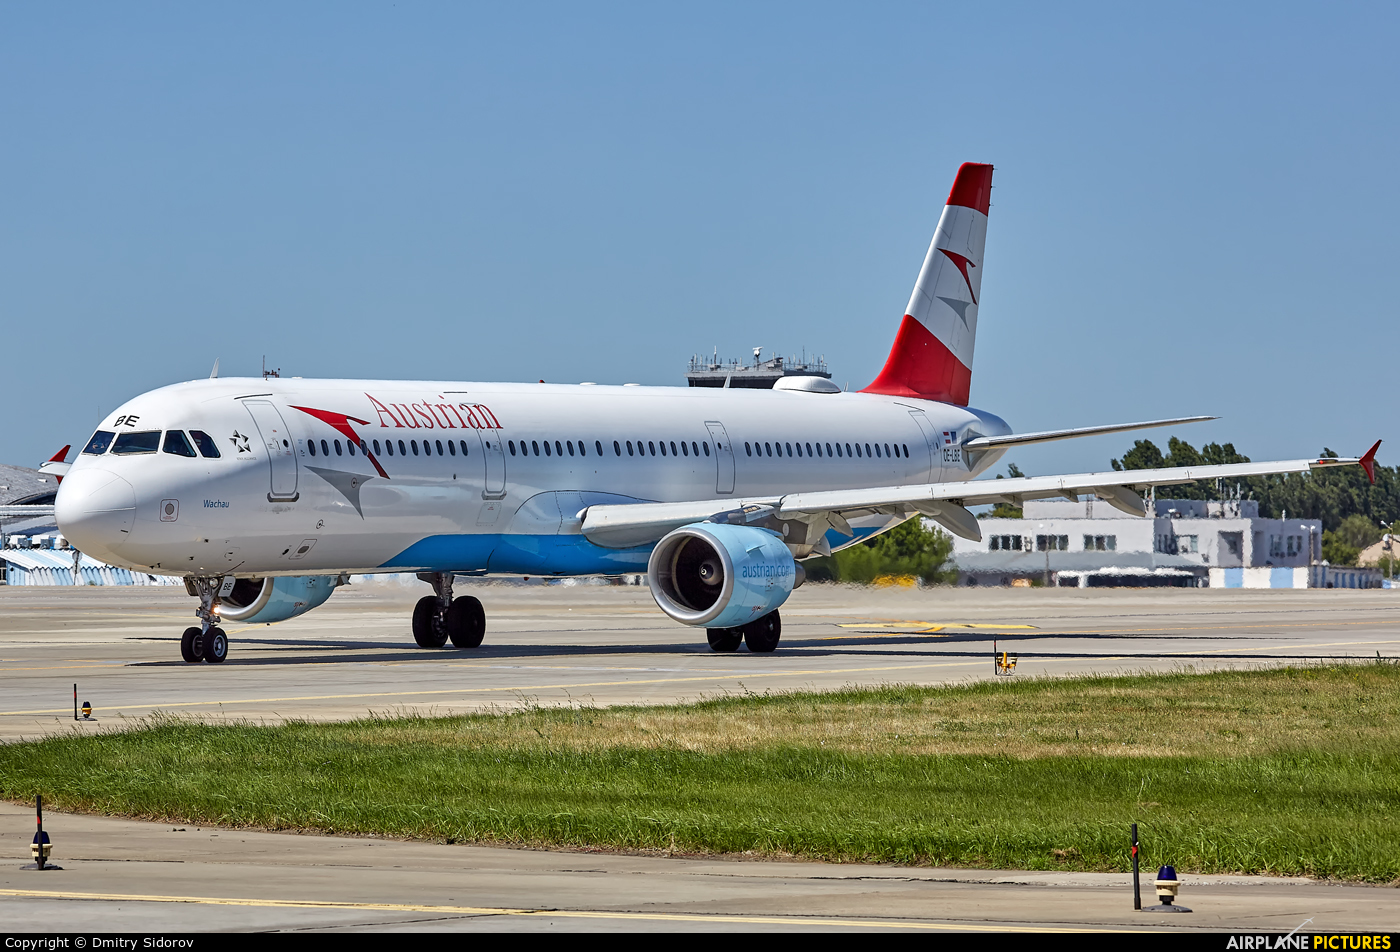 Austrian Airlines/Arrows/Tyrolean OE-LBE aircraft at Kyiv - Borispol